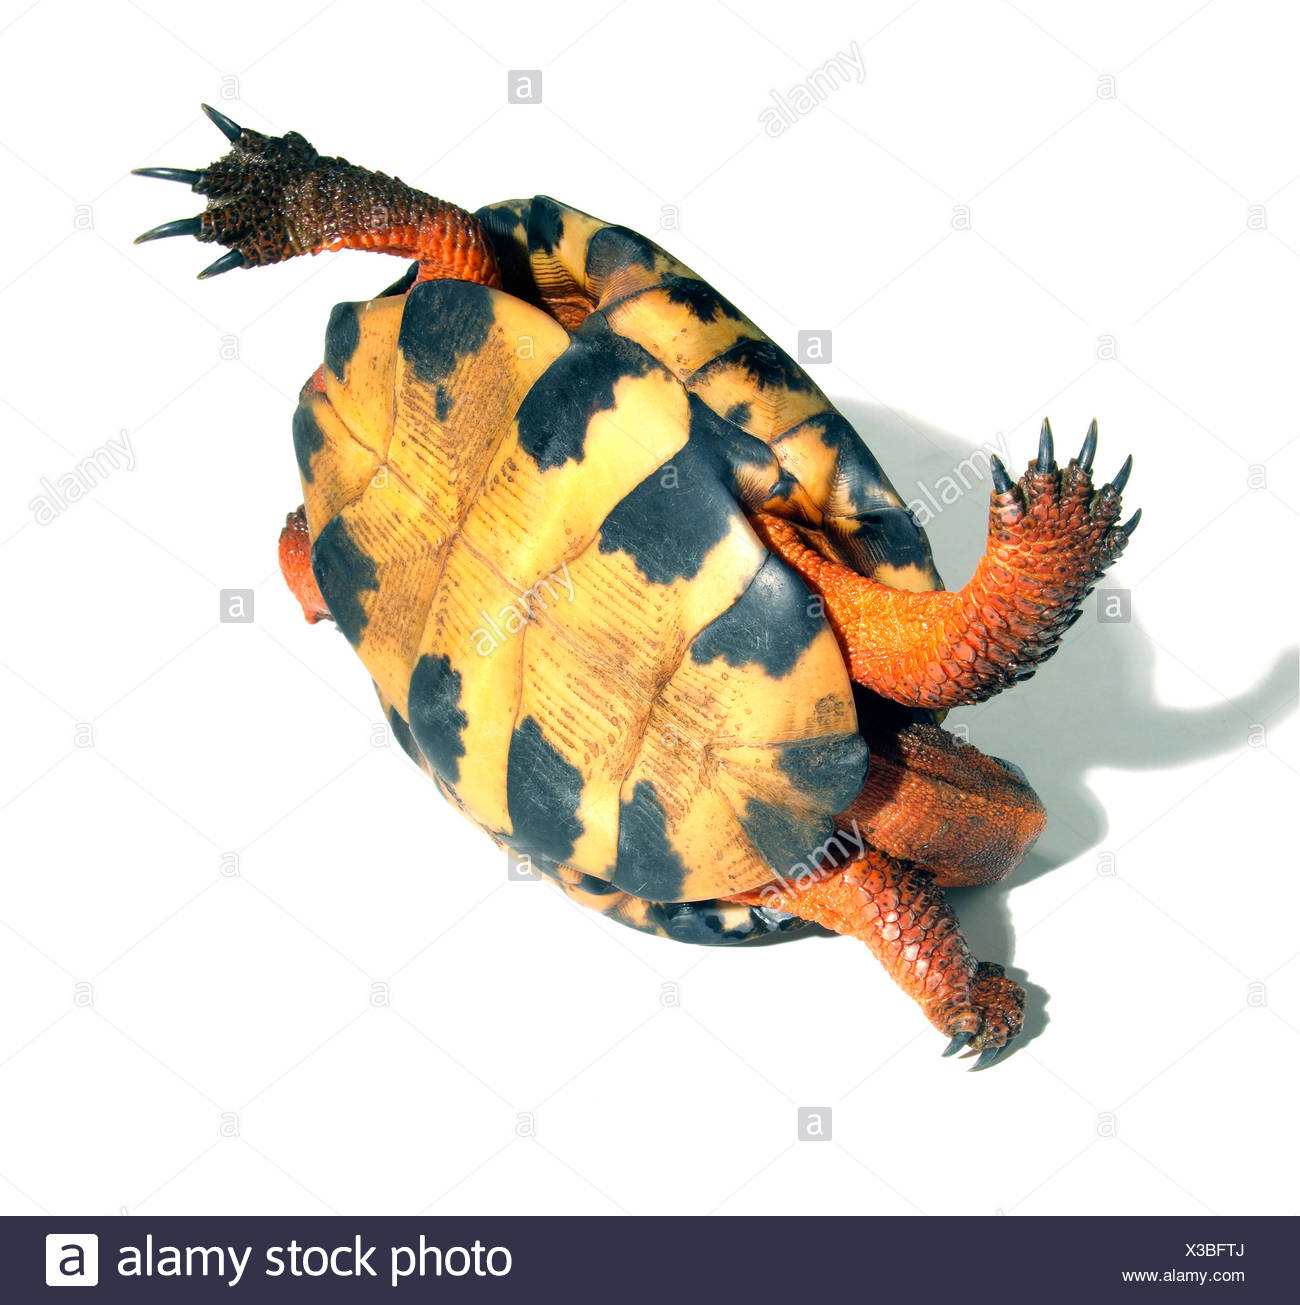 Close-up of a tortoise upside down Stock Photo